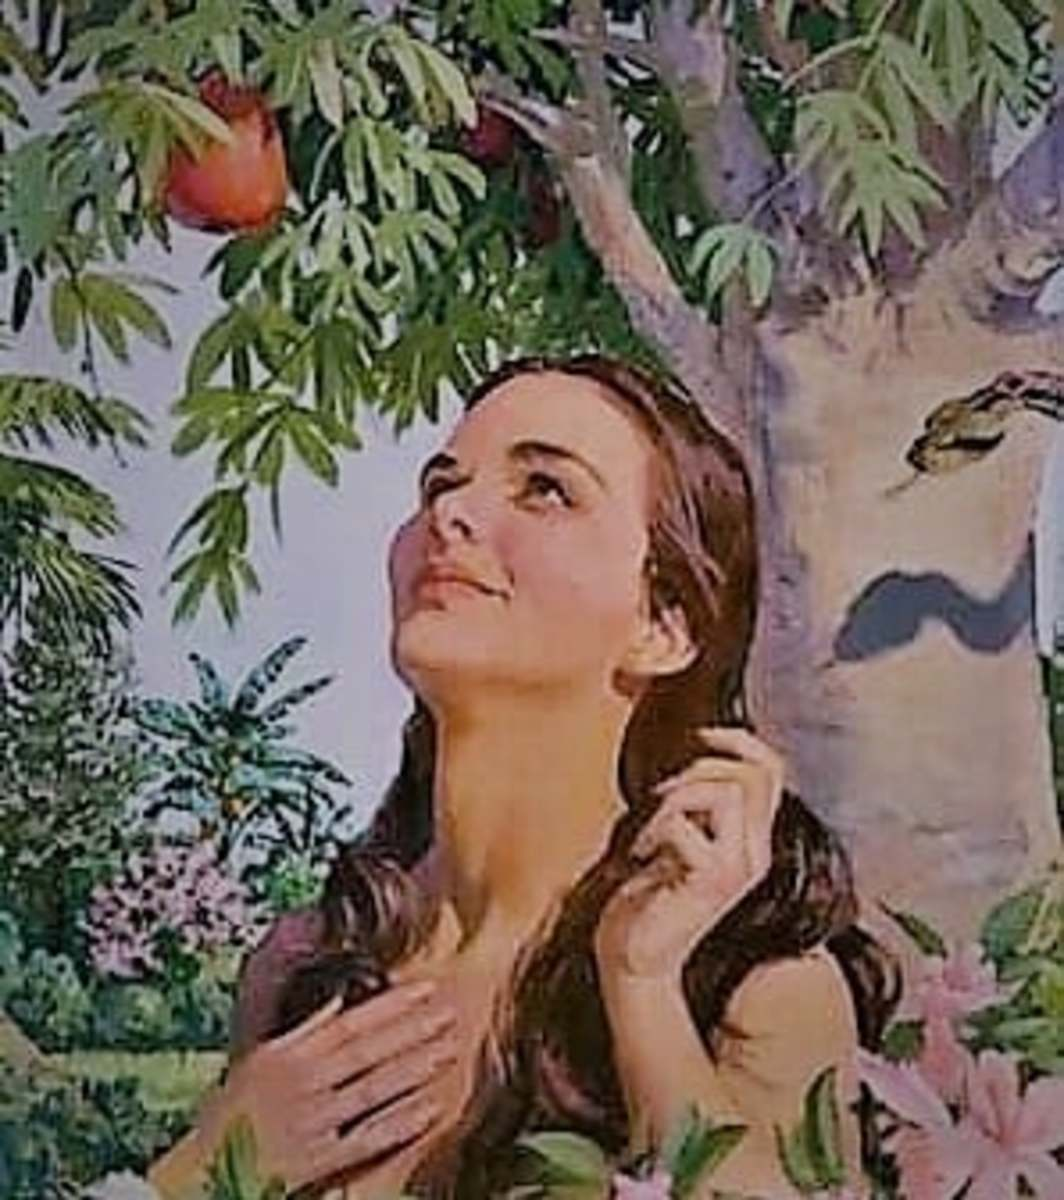 the-old-serpent-and-the-forbidden-fruit-in-the-garden-of-eden